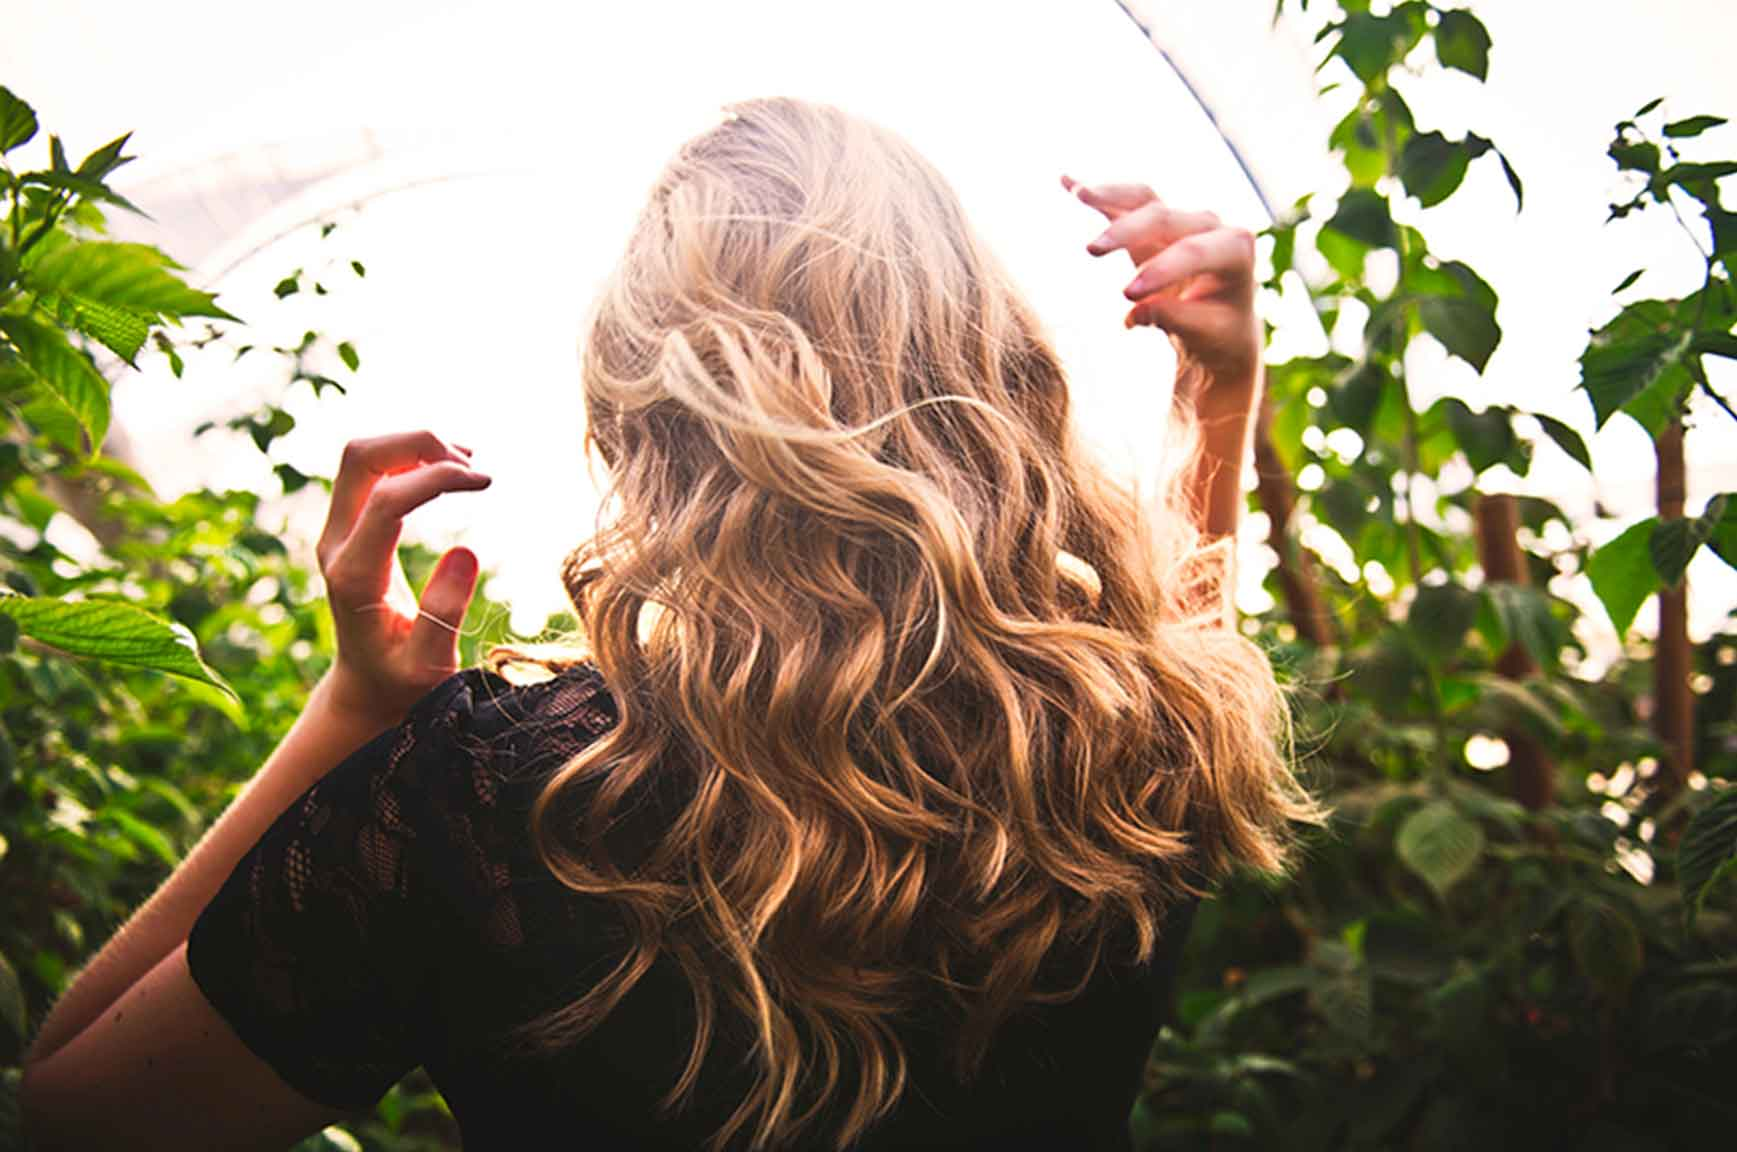 Hair Styling-An Obsession